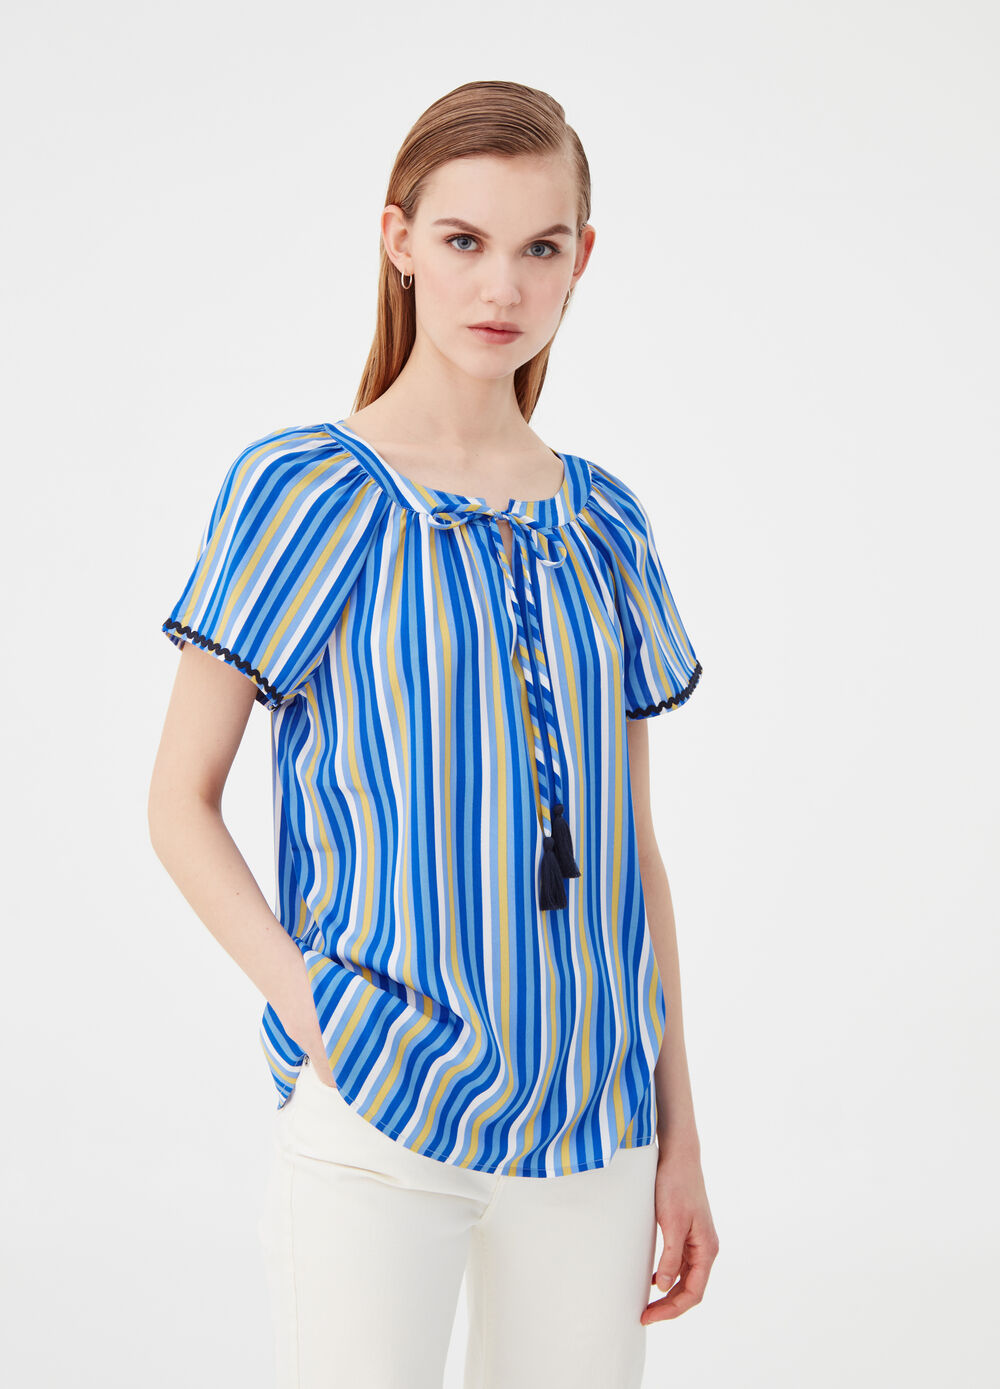 Fluid fabric blouse with striped pattern